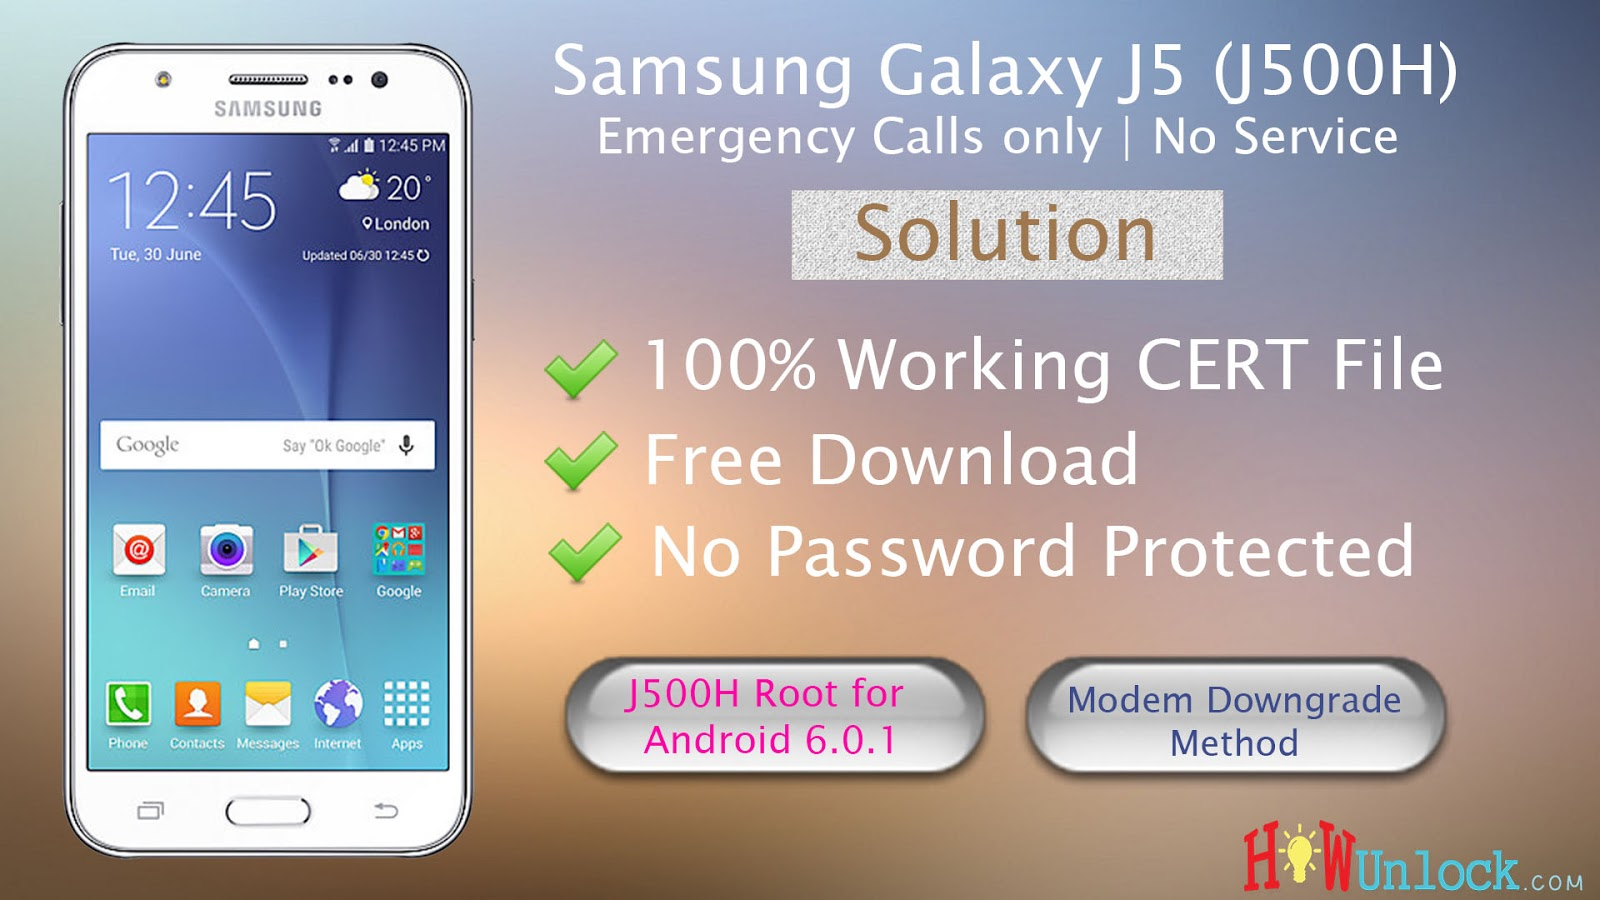 Samsung Galaxy J5 J500H Emergency Calls only | No Service